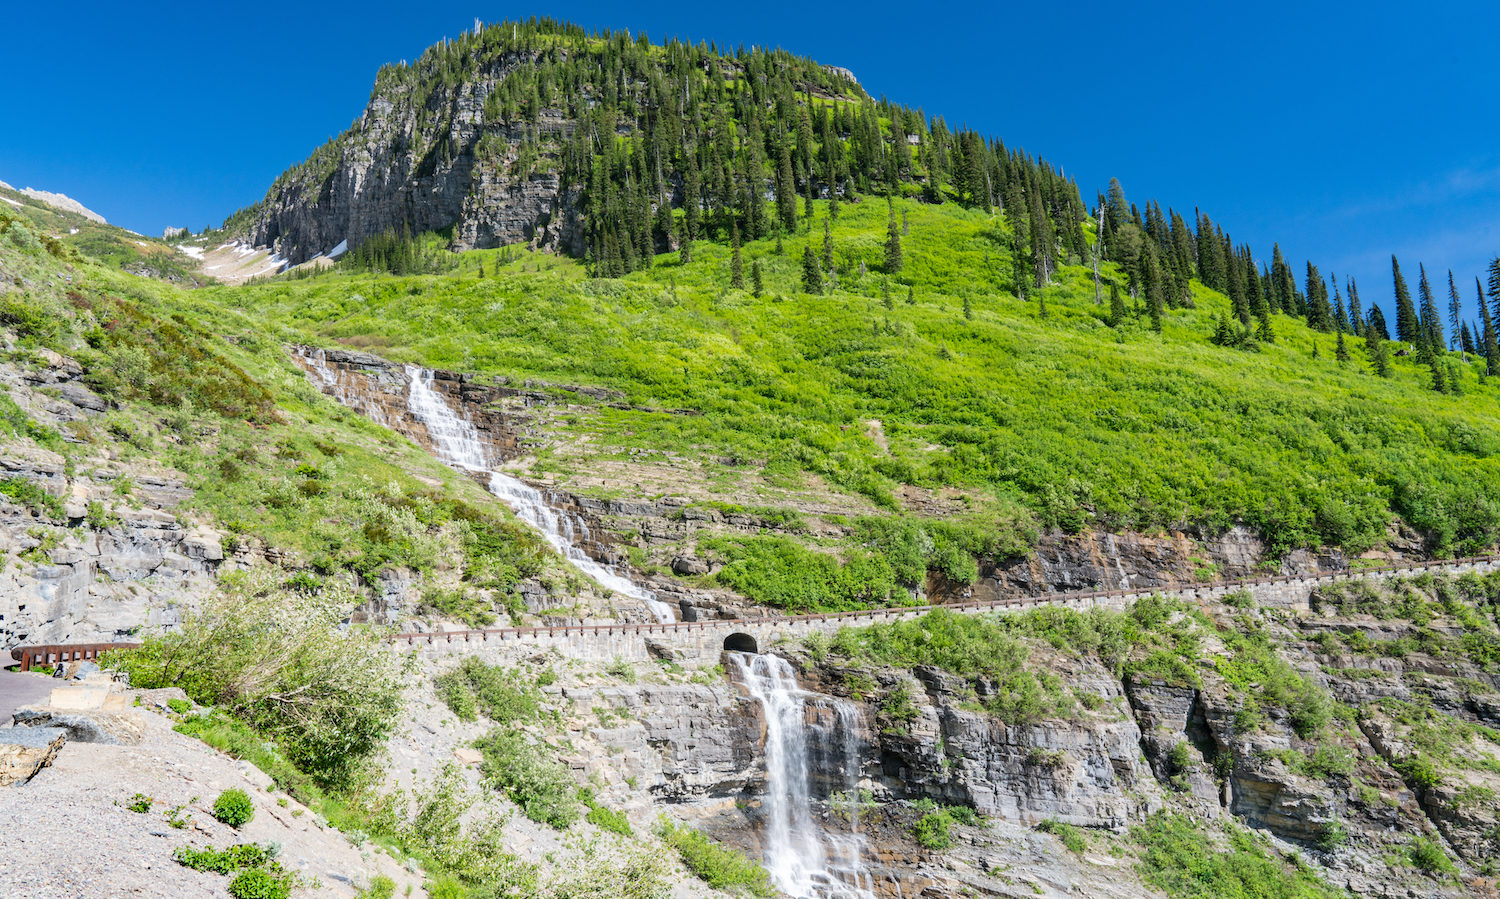 GyPSy Guide Narrated Driving Tour App for Glacier National Park